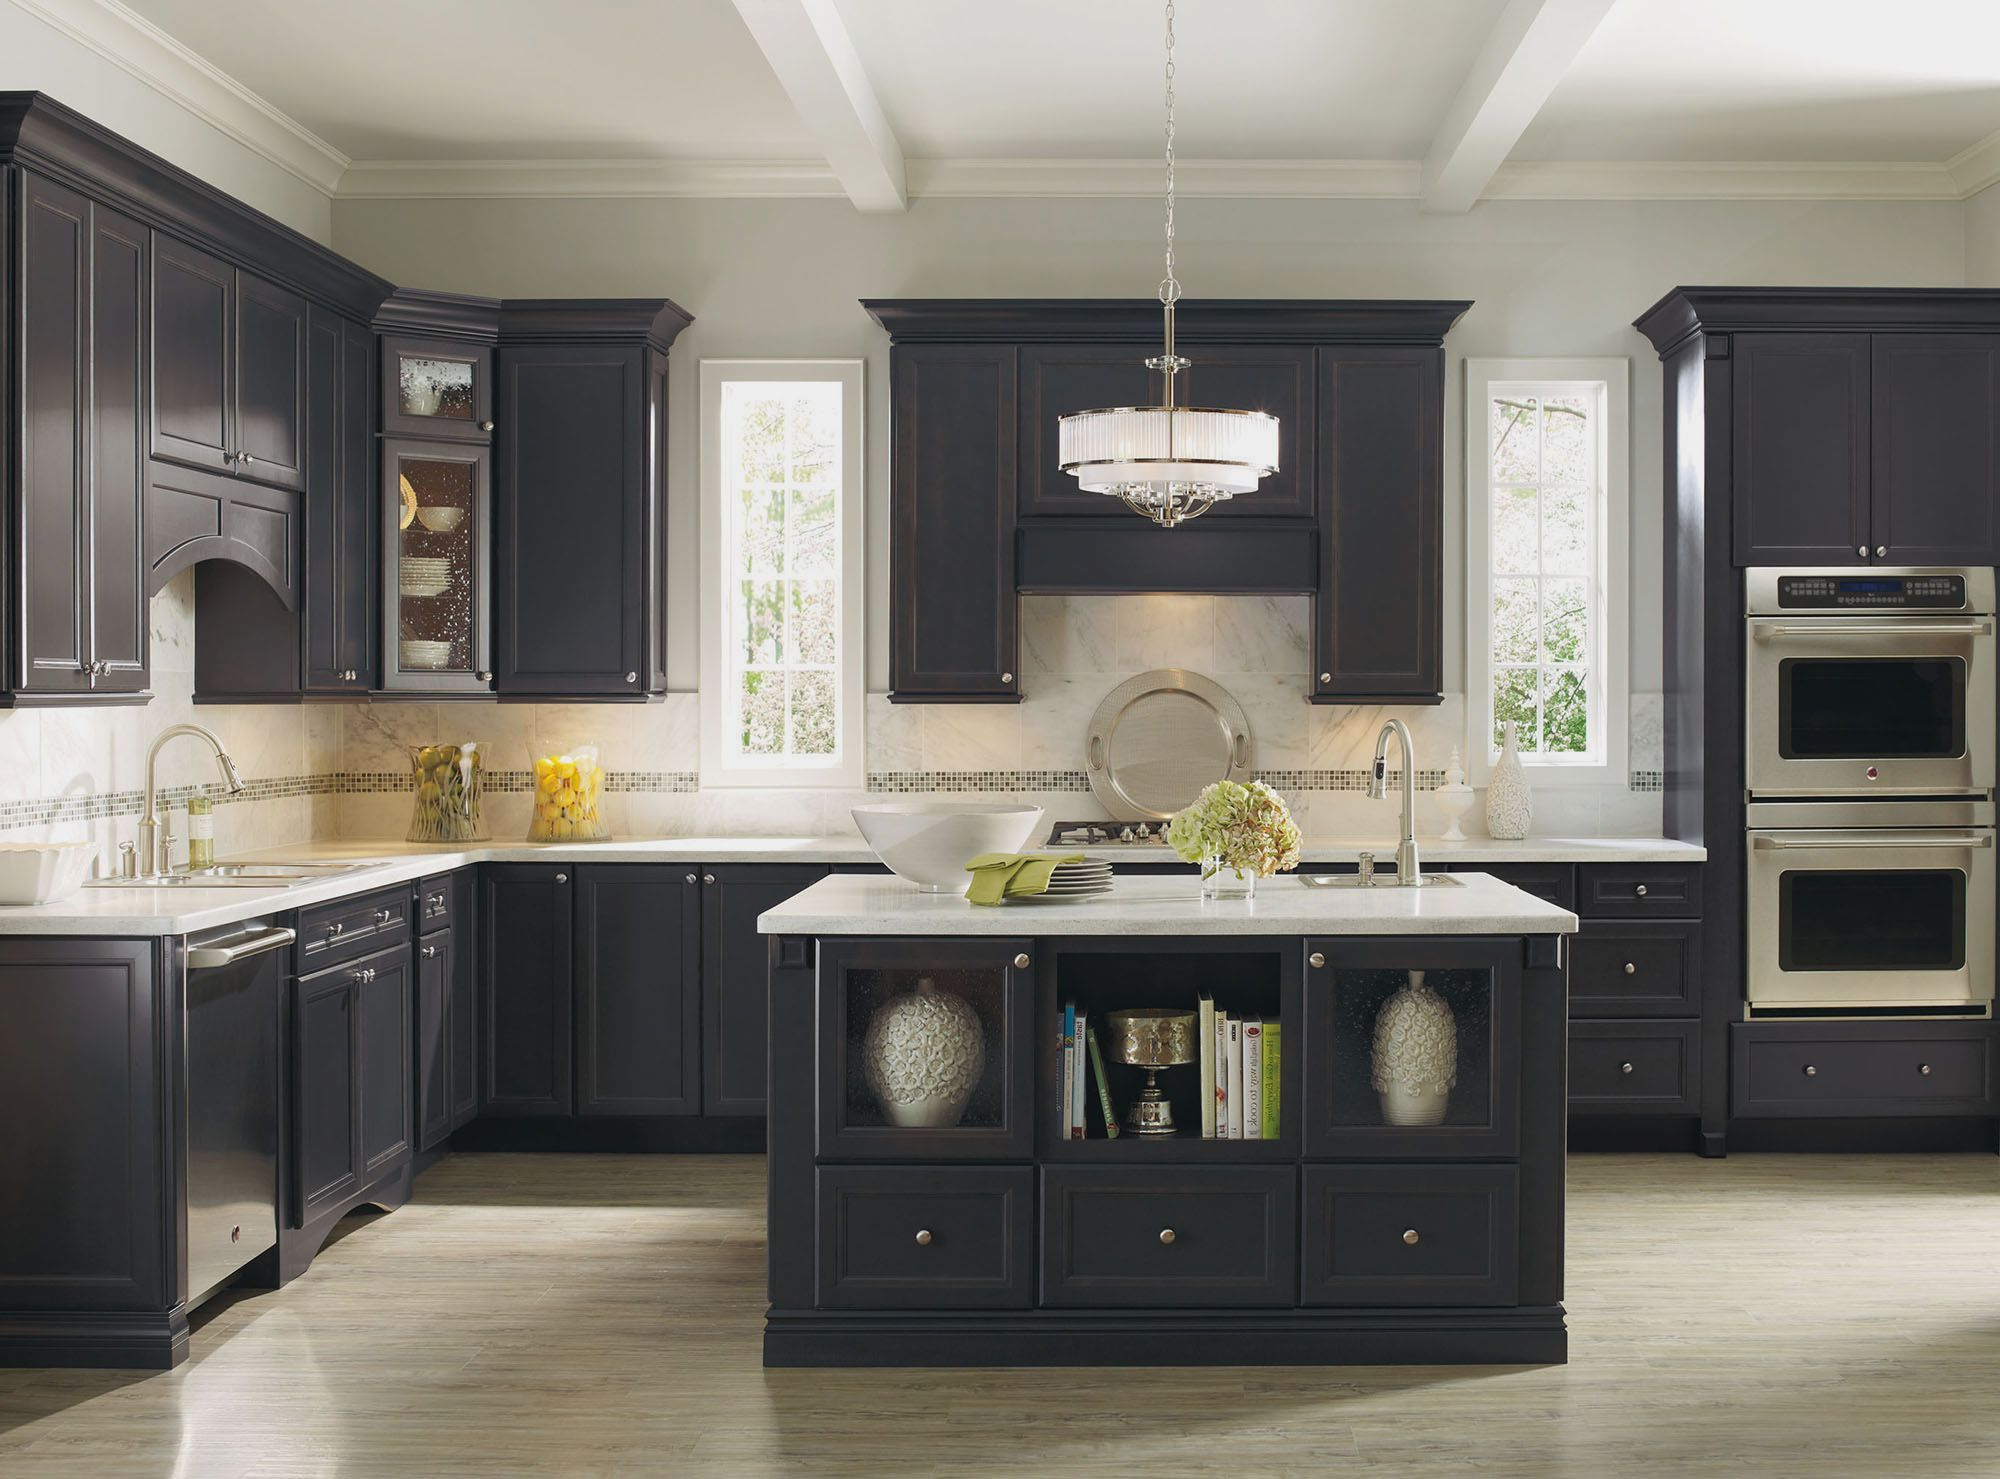 grey tiles ikea backsplash with grey wooden kitchen cabi and white cabinet black traditional on kitchen cabinets grey and white id=15734